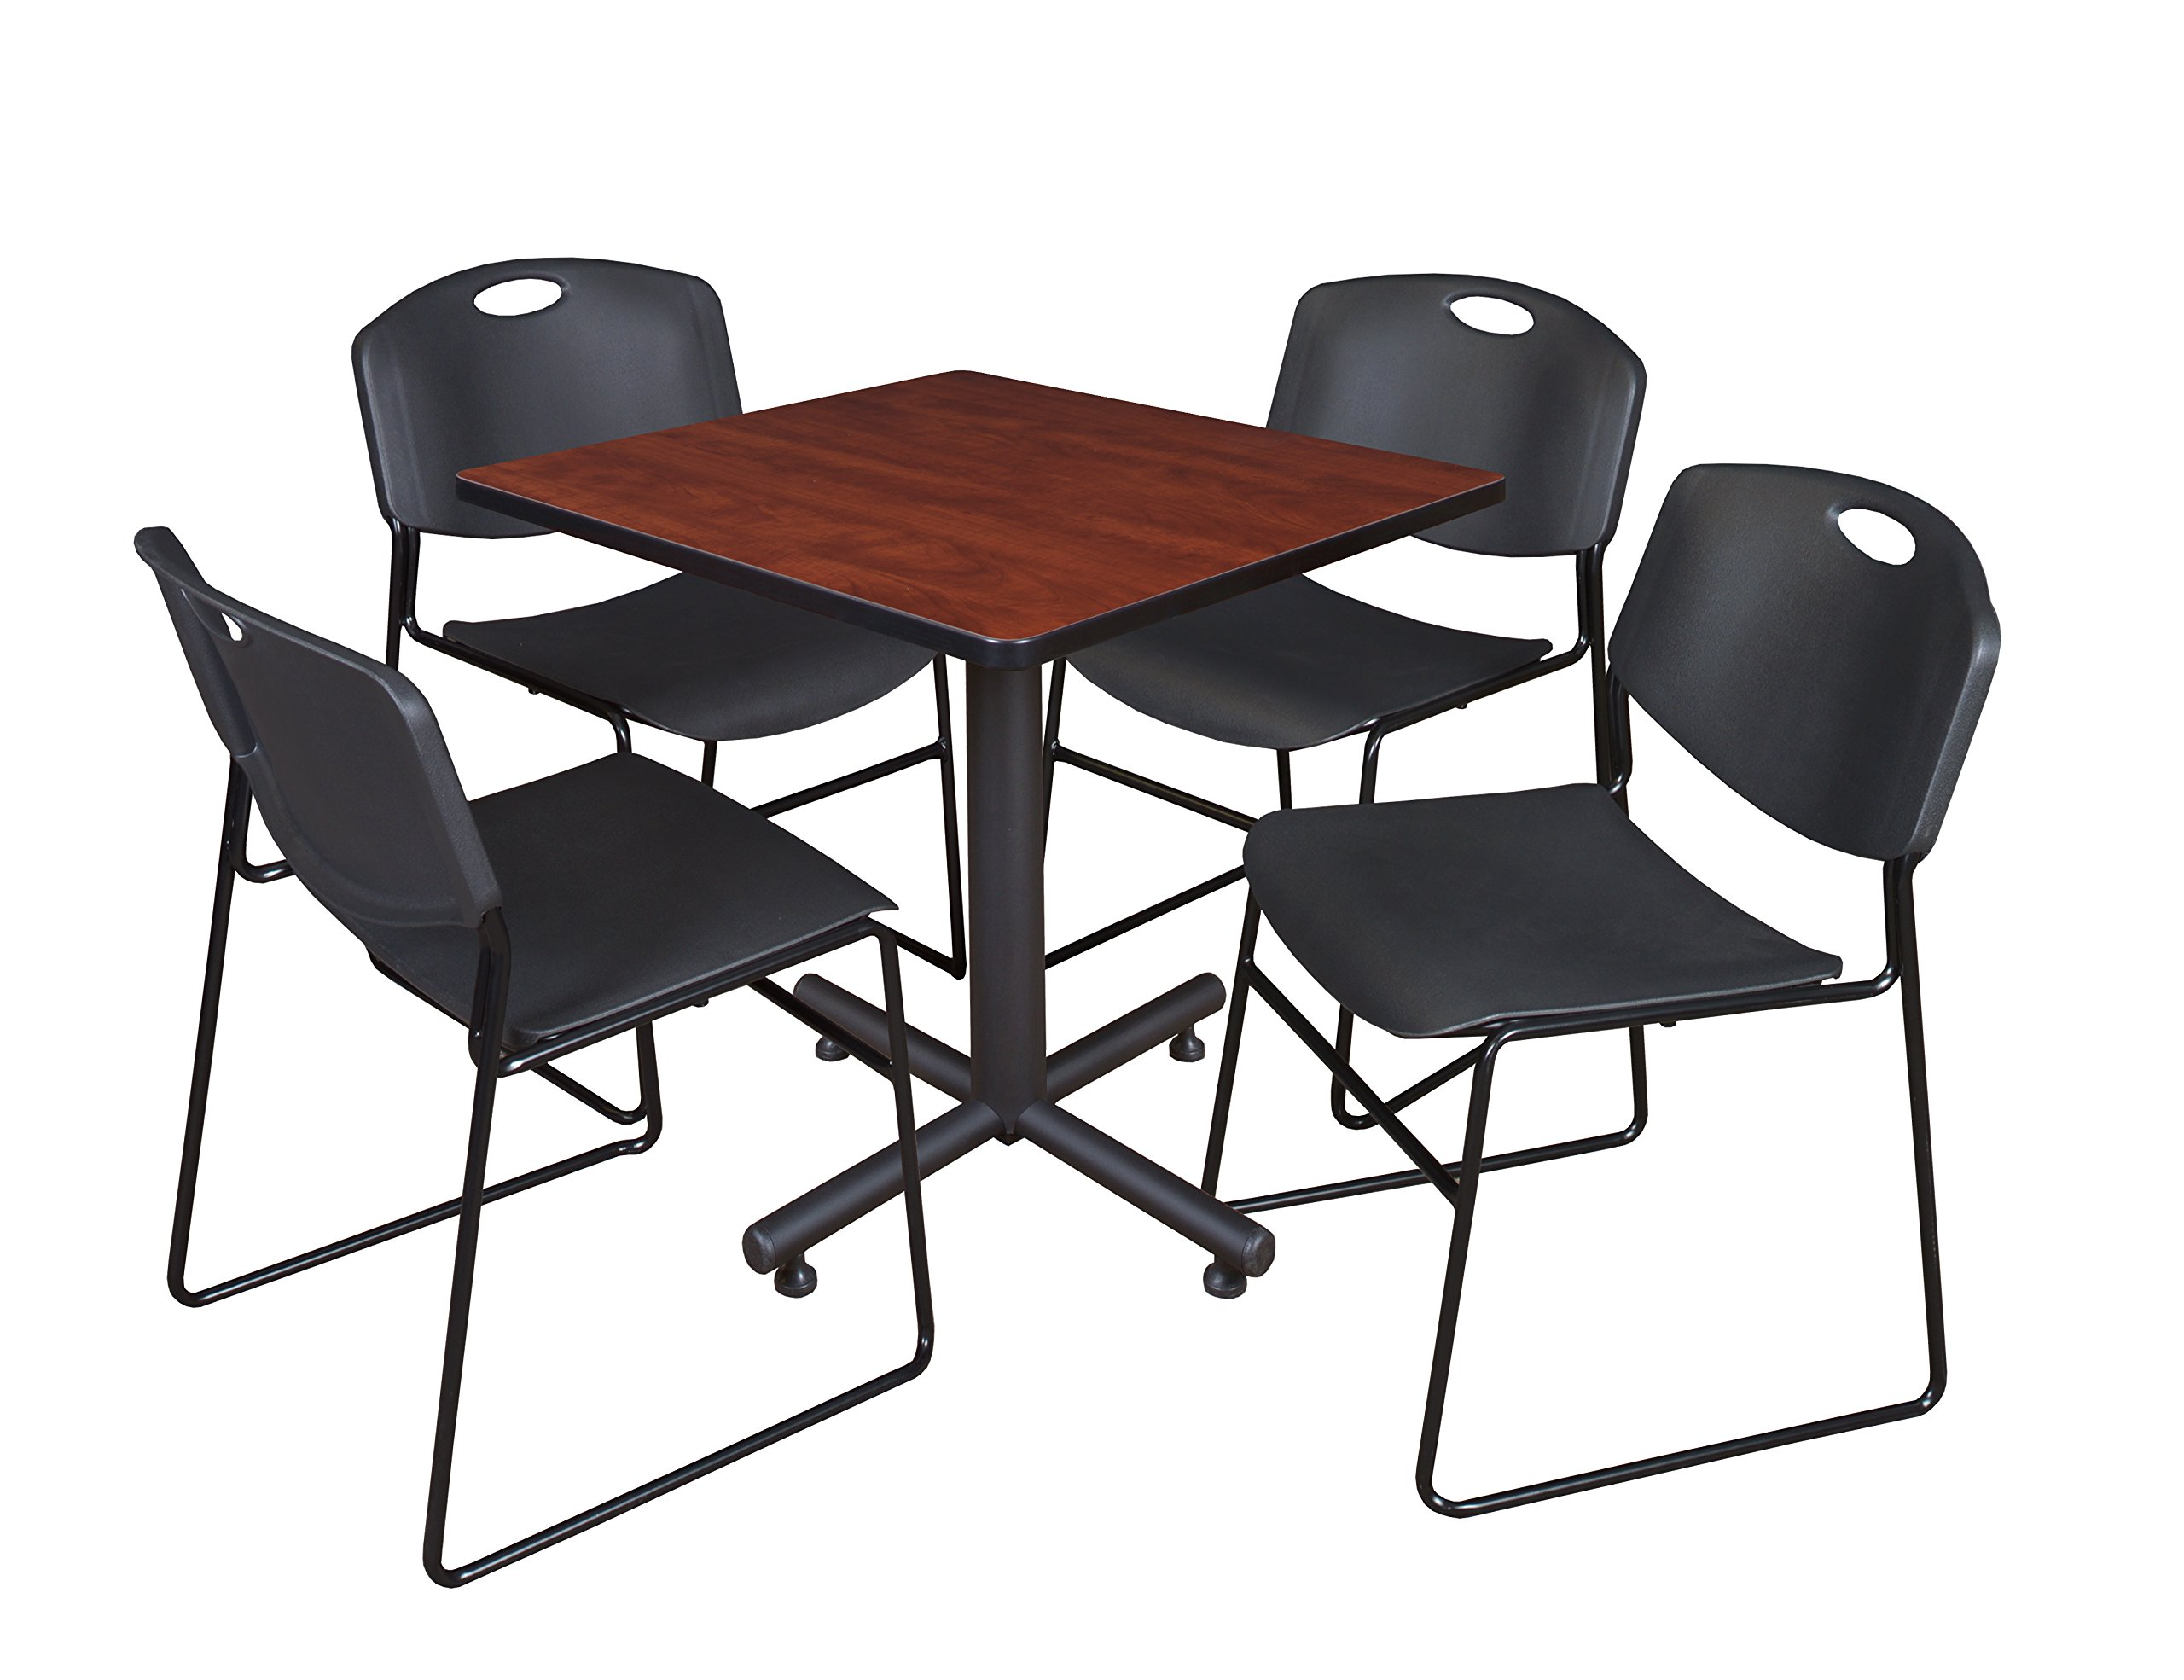 Regency Kobe 30-Inch Square Breakroom Table, Cherry, and 4 Zeng Stack Chairs- Black